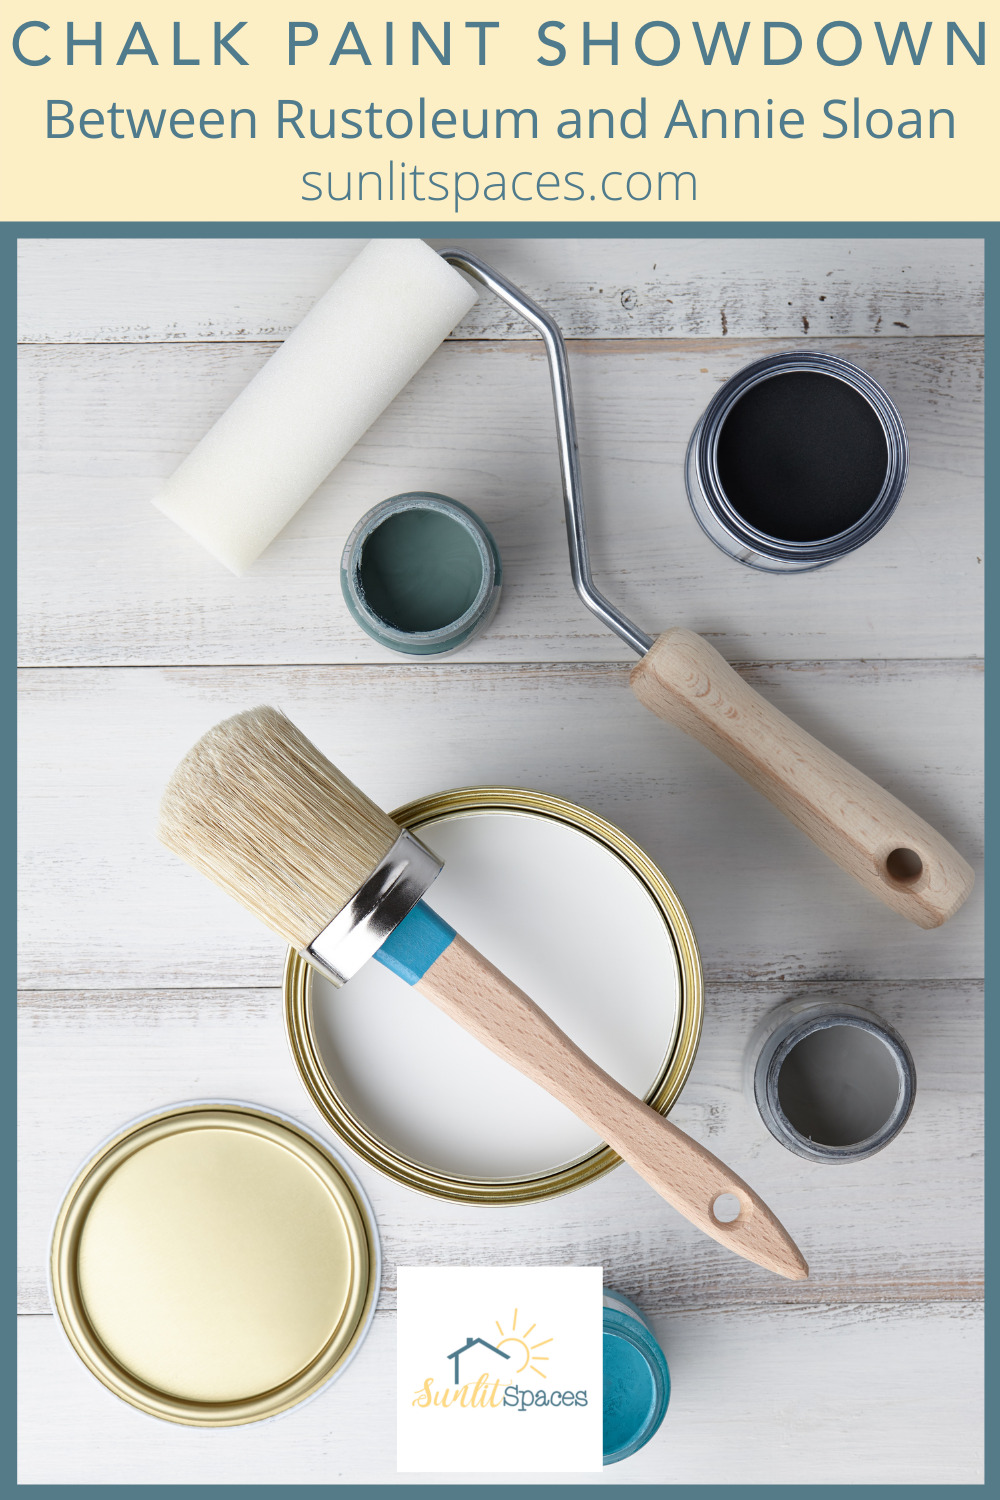 Sunlitspaces.com has the best ideas to help you design and execute a perfect living space! Find creative ways to make your place feel like home. Get that cozy feel of chalk paint on your furniture. Decide between Rustoleum and Annie Sloan with this useful guide!